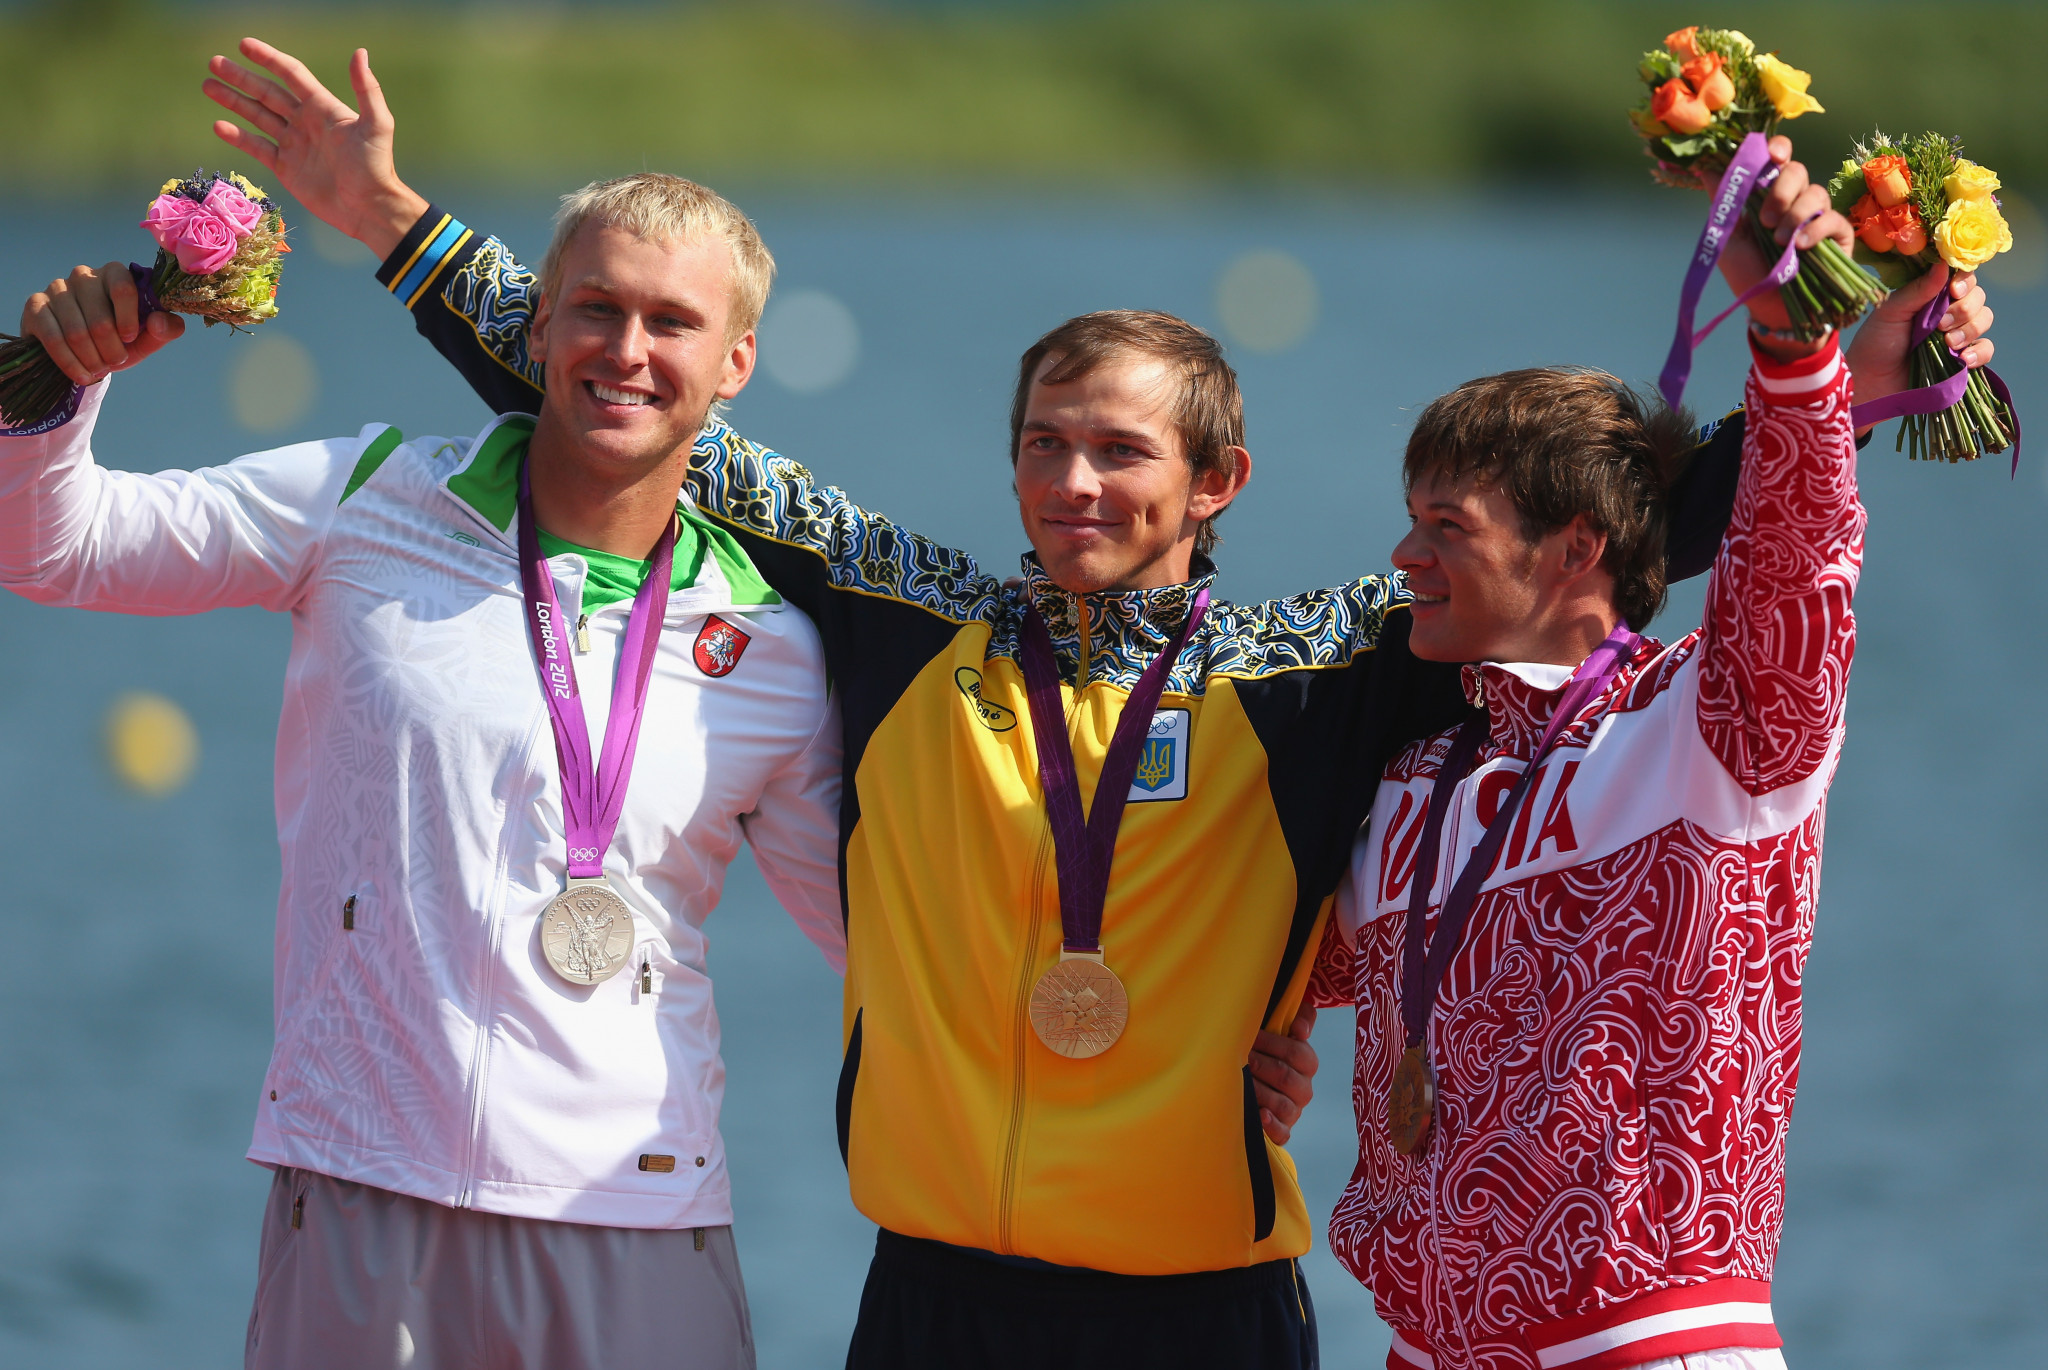 Jevgenij Shuklin claimed the C1 200 metres silver medal at London 2012 ©Getty Images